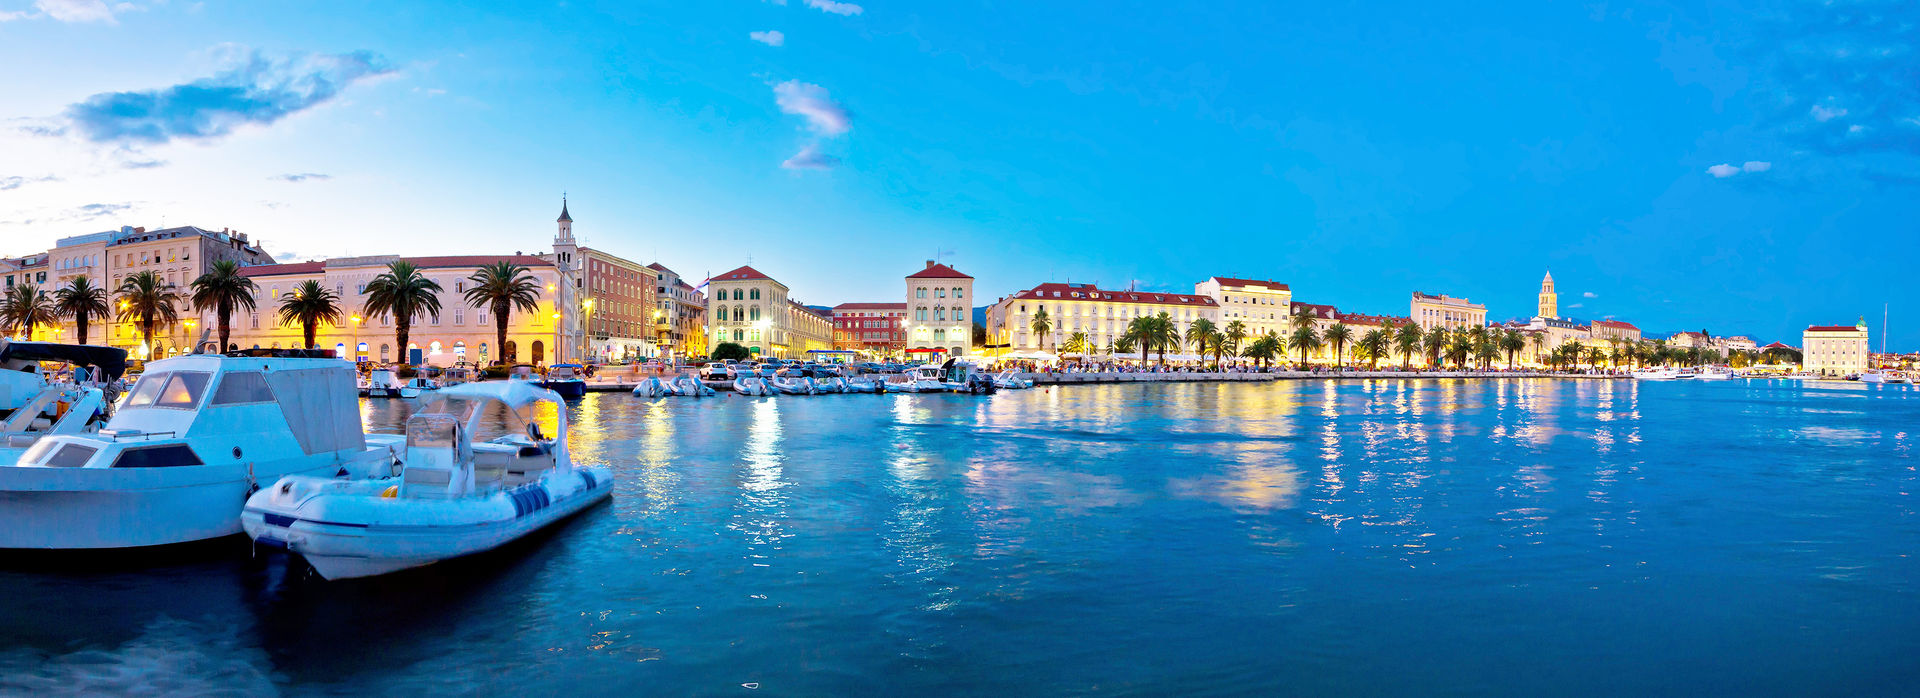 3 of the best historical experiences in Split